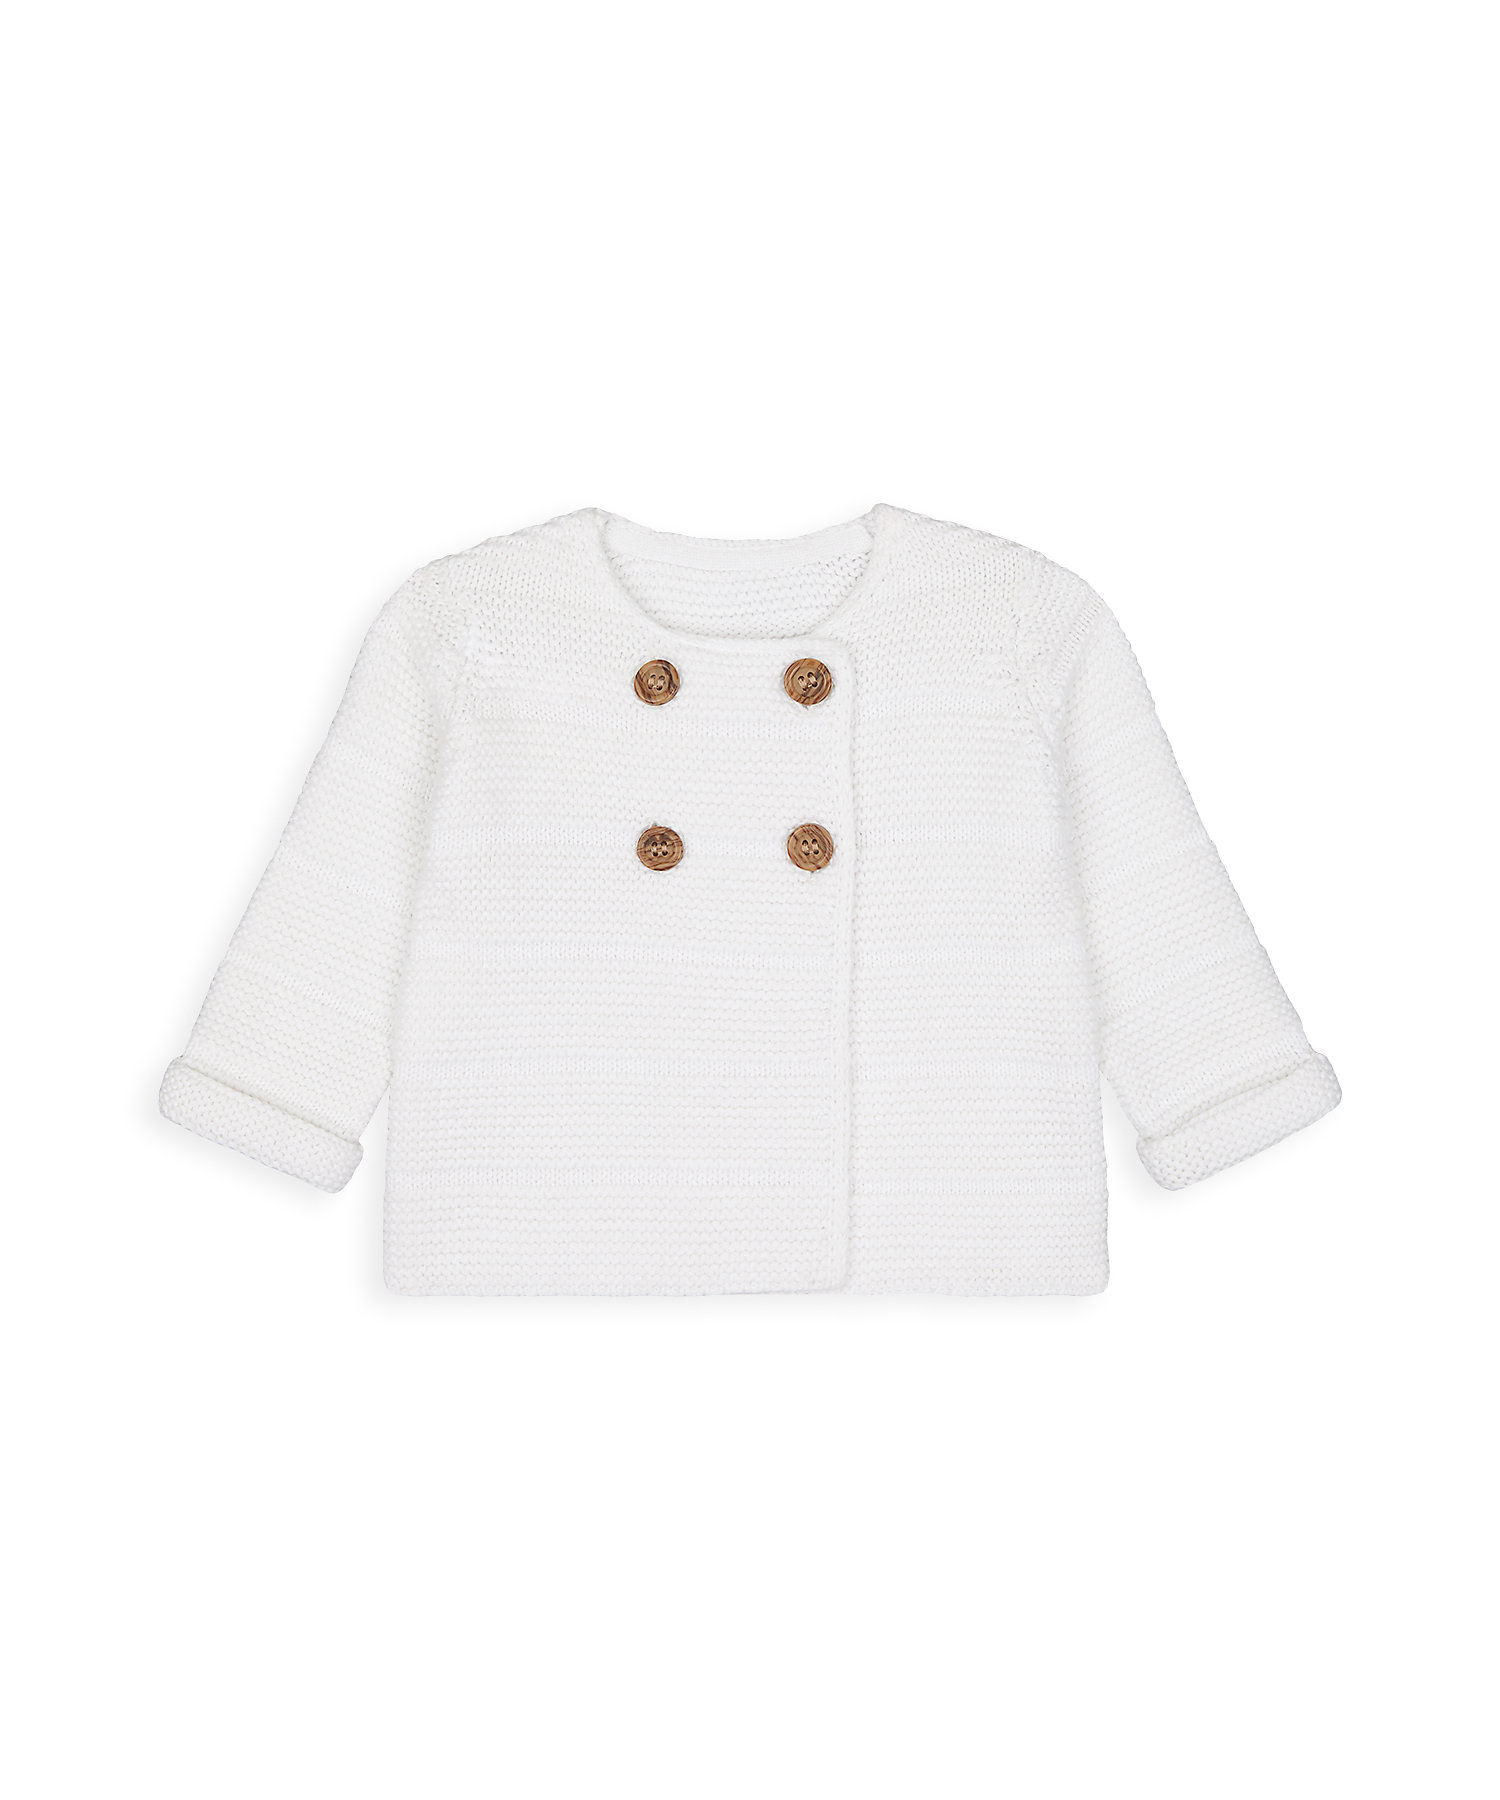 Mothercare | Unisex Full Sleeves Cardigan With Button Fastening - Cream